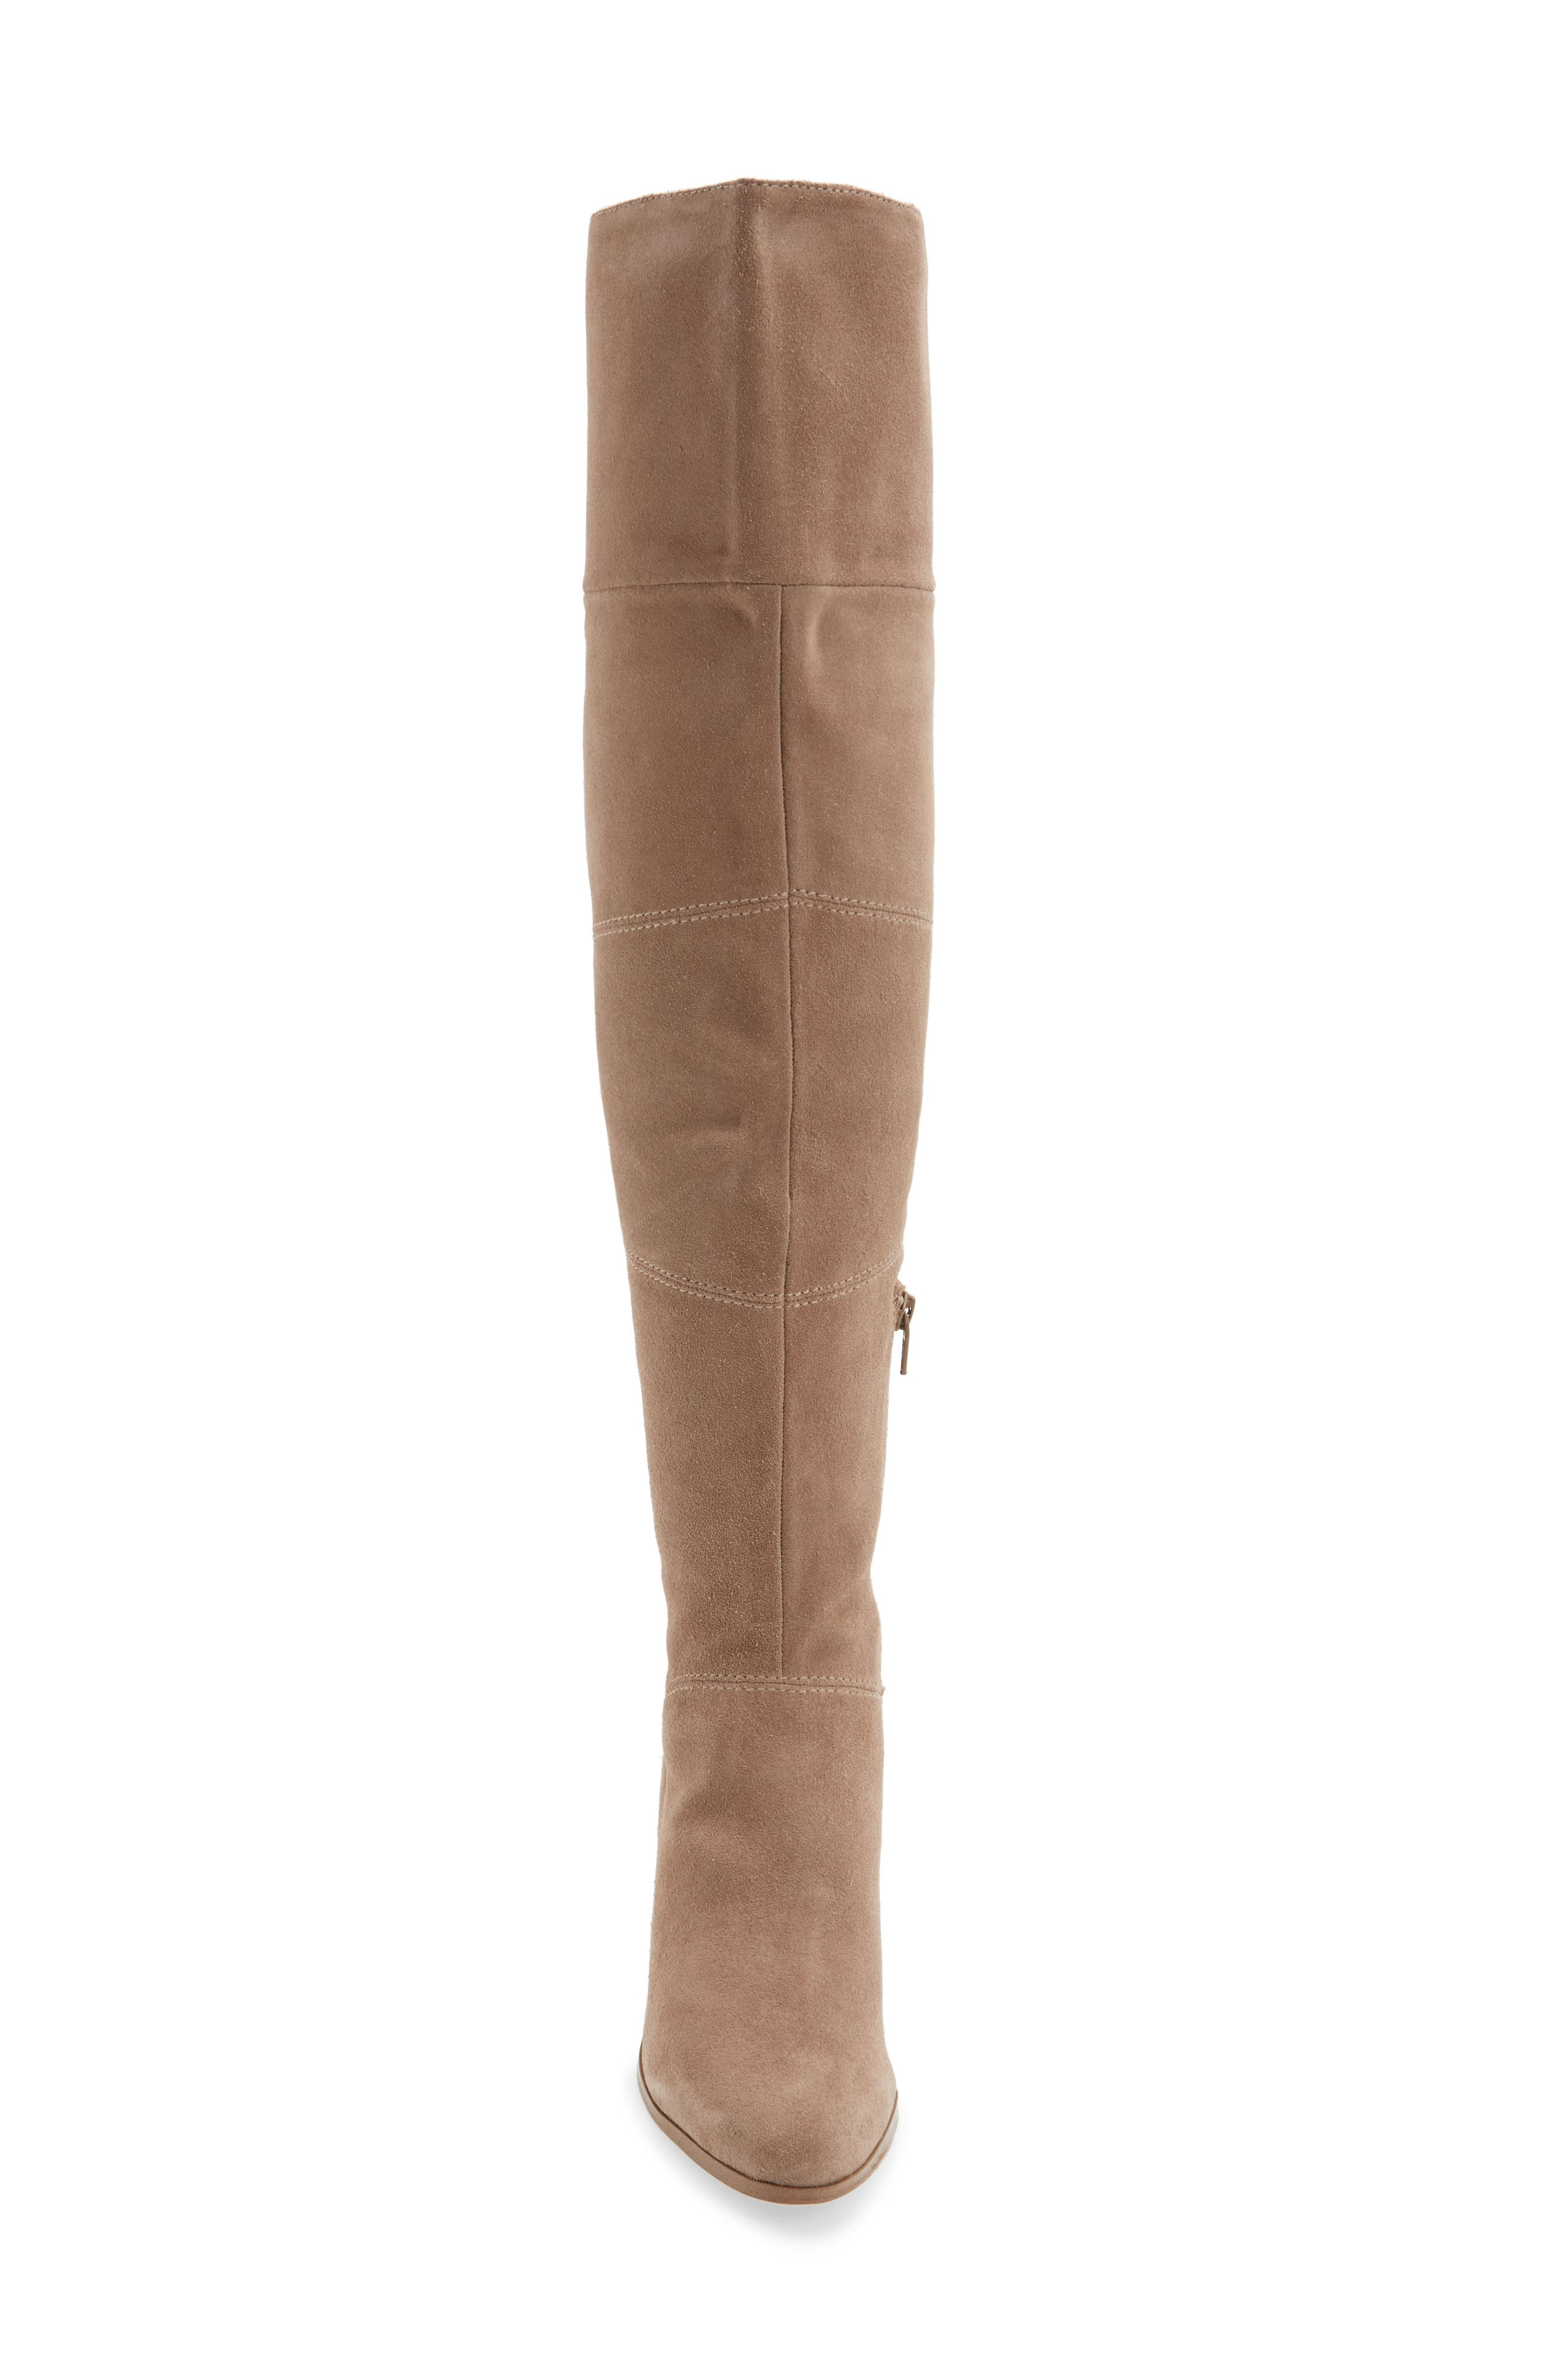 Melbourne Over the Knee Boot,                             Alternate thumbnail 4, color,                             Night Taupe Suede